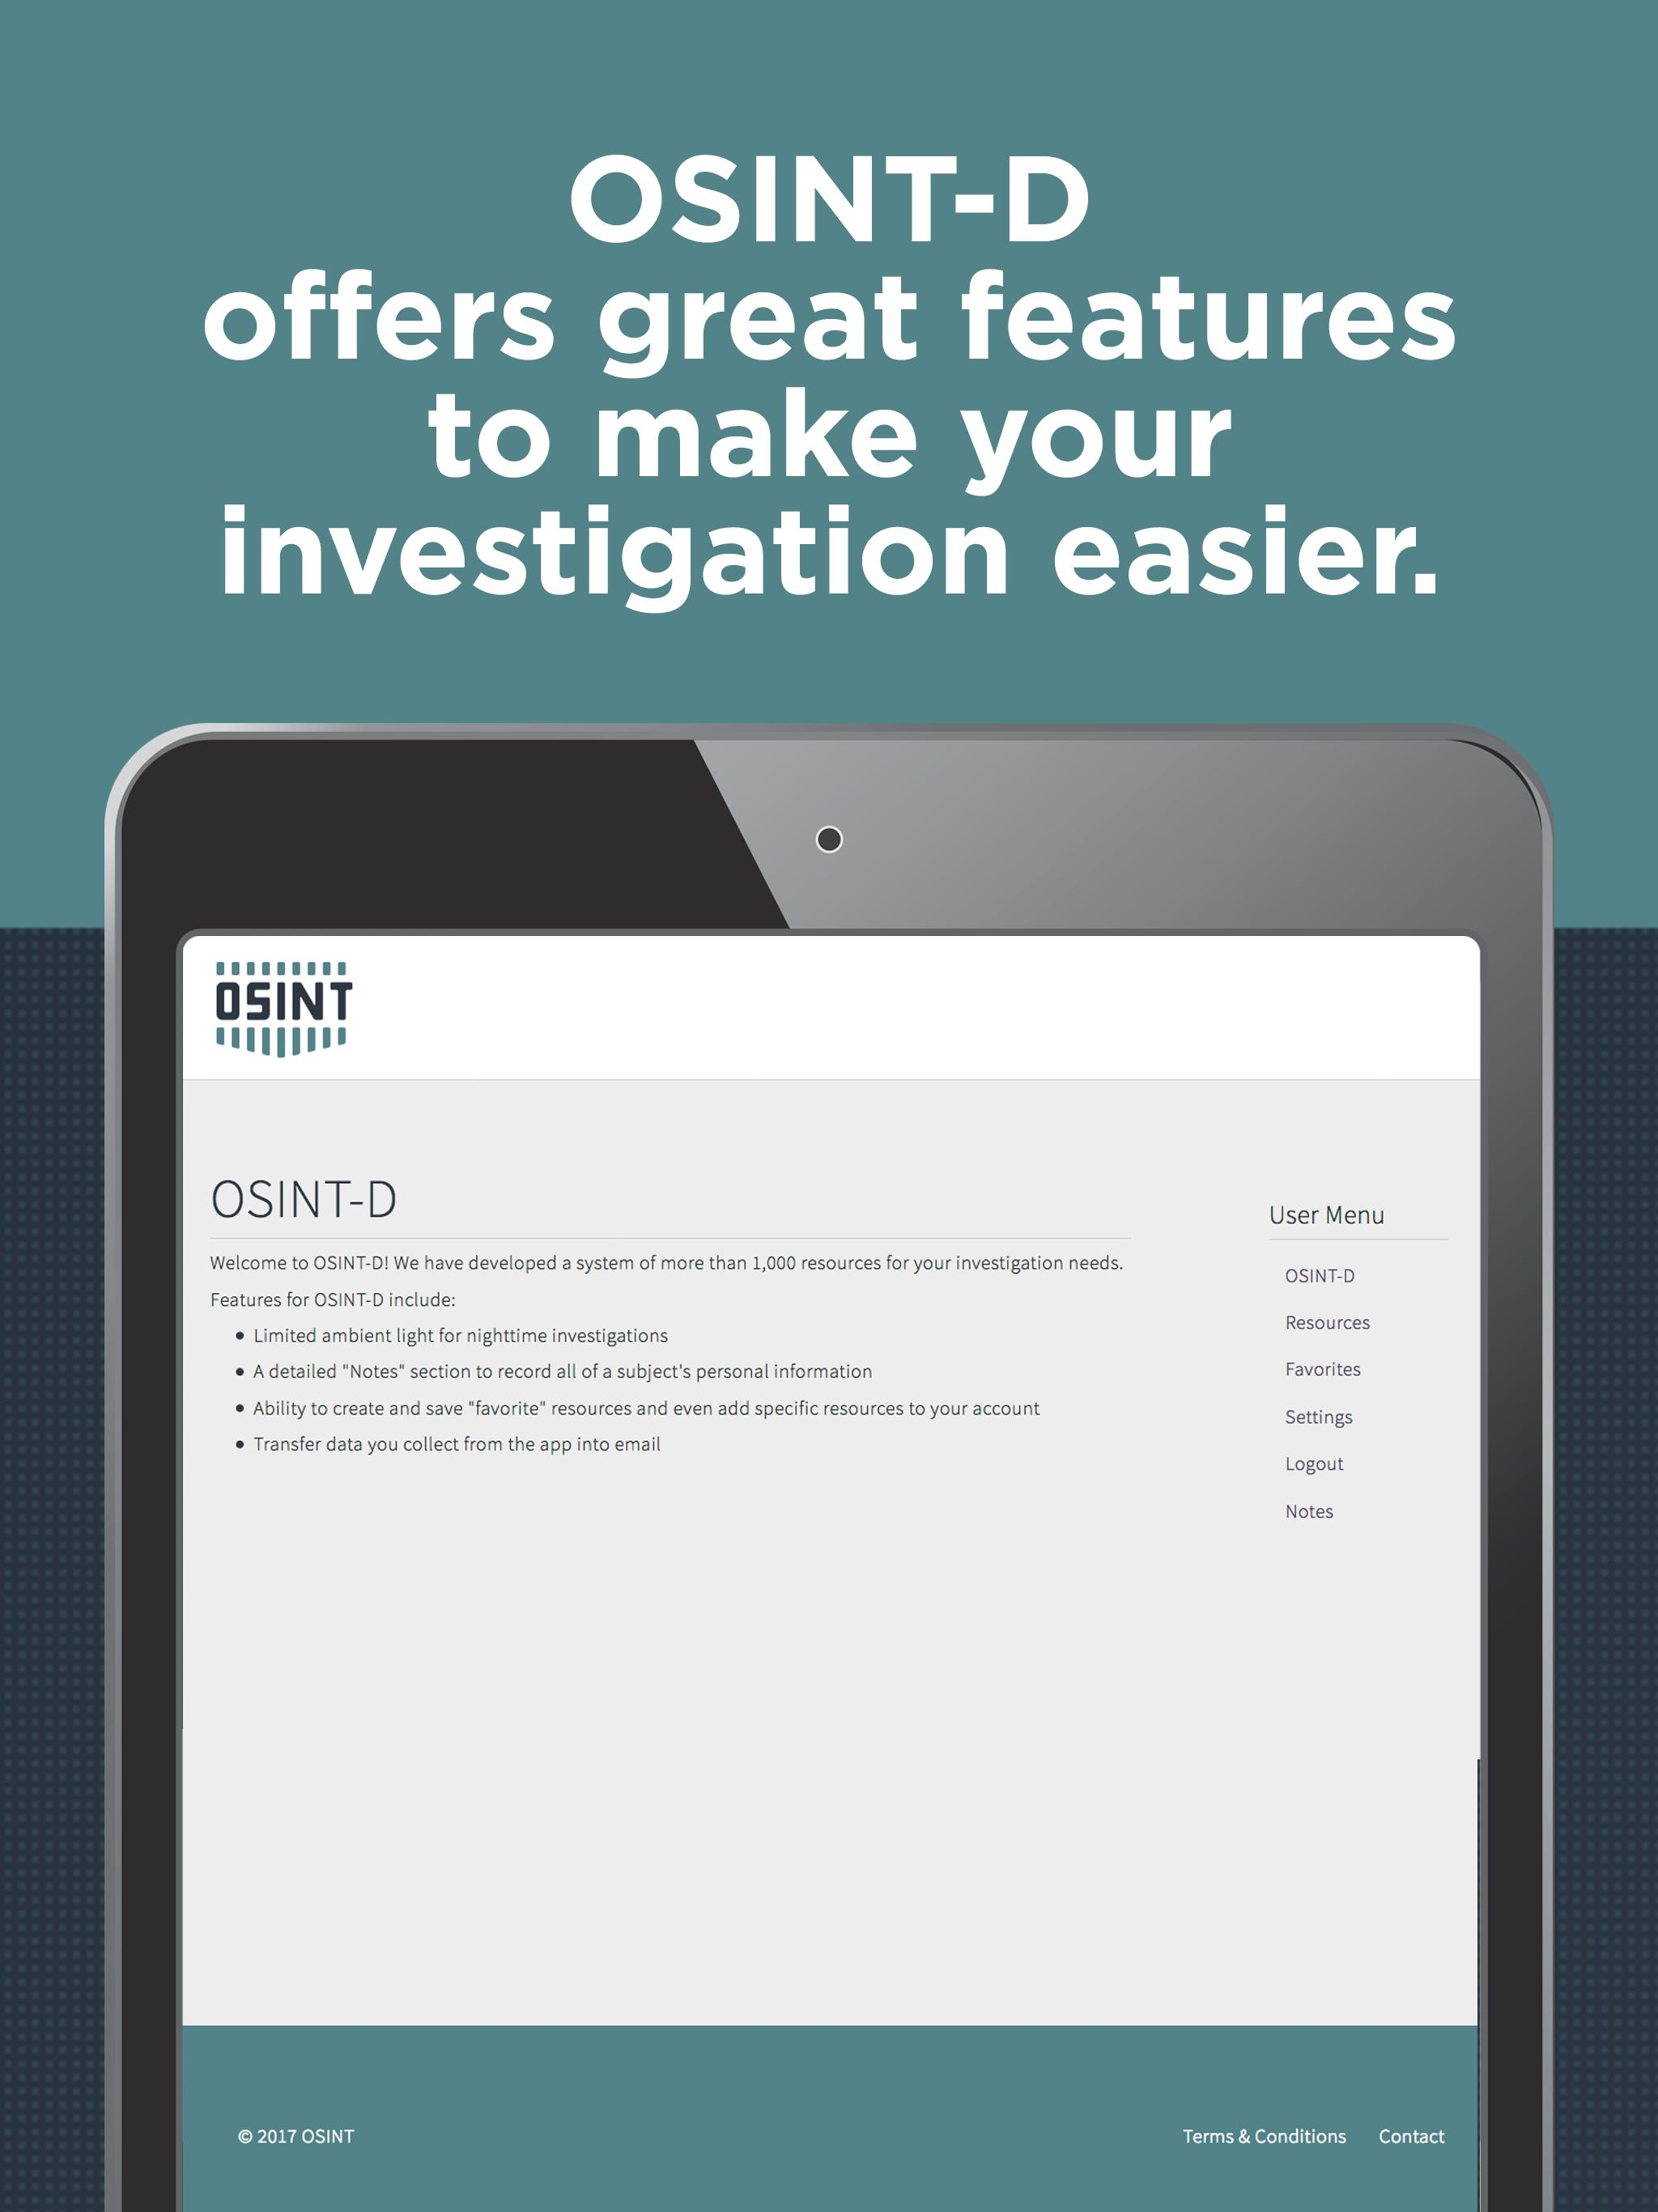 OSINT-D for Android - APK Download